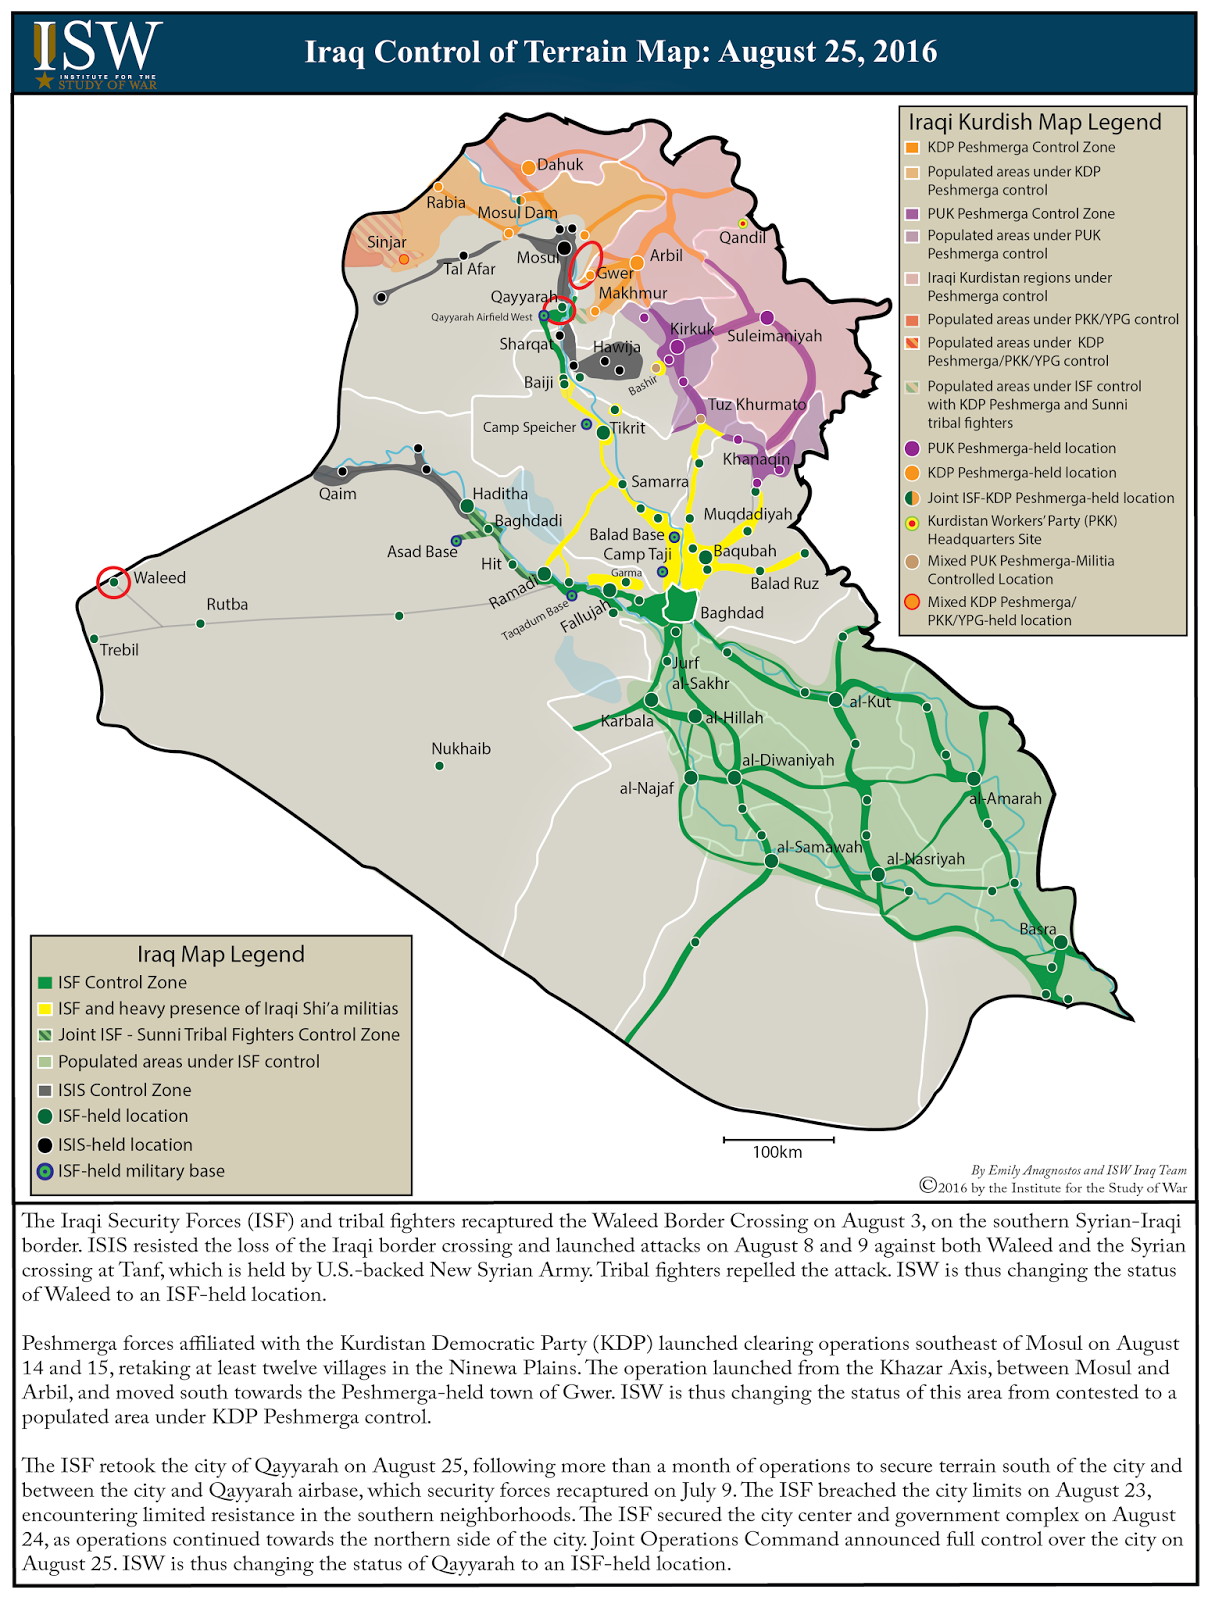 ISW Blog: Iraq Control of Terrain Map: August 25, 2016 on tehran iraq map, taji iraq map, dahuk iraq map, abu ghraib iraq map, basra iraq map, muqdadiyah iraq map, green line iraq map, iraq war invasion map, tel keppe iraq map, ramadi iraq map, daesh iraq map, husaybah iraq map, abu dhabi iraq map, balad iraq map, kirkuk iraq map, nasiriyah iraq map, samarah iraq map, rawa iraq map, tikrit iraq map, kuwait iraq map,